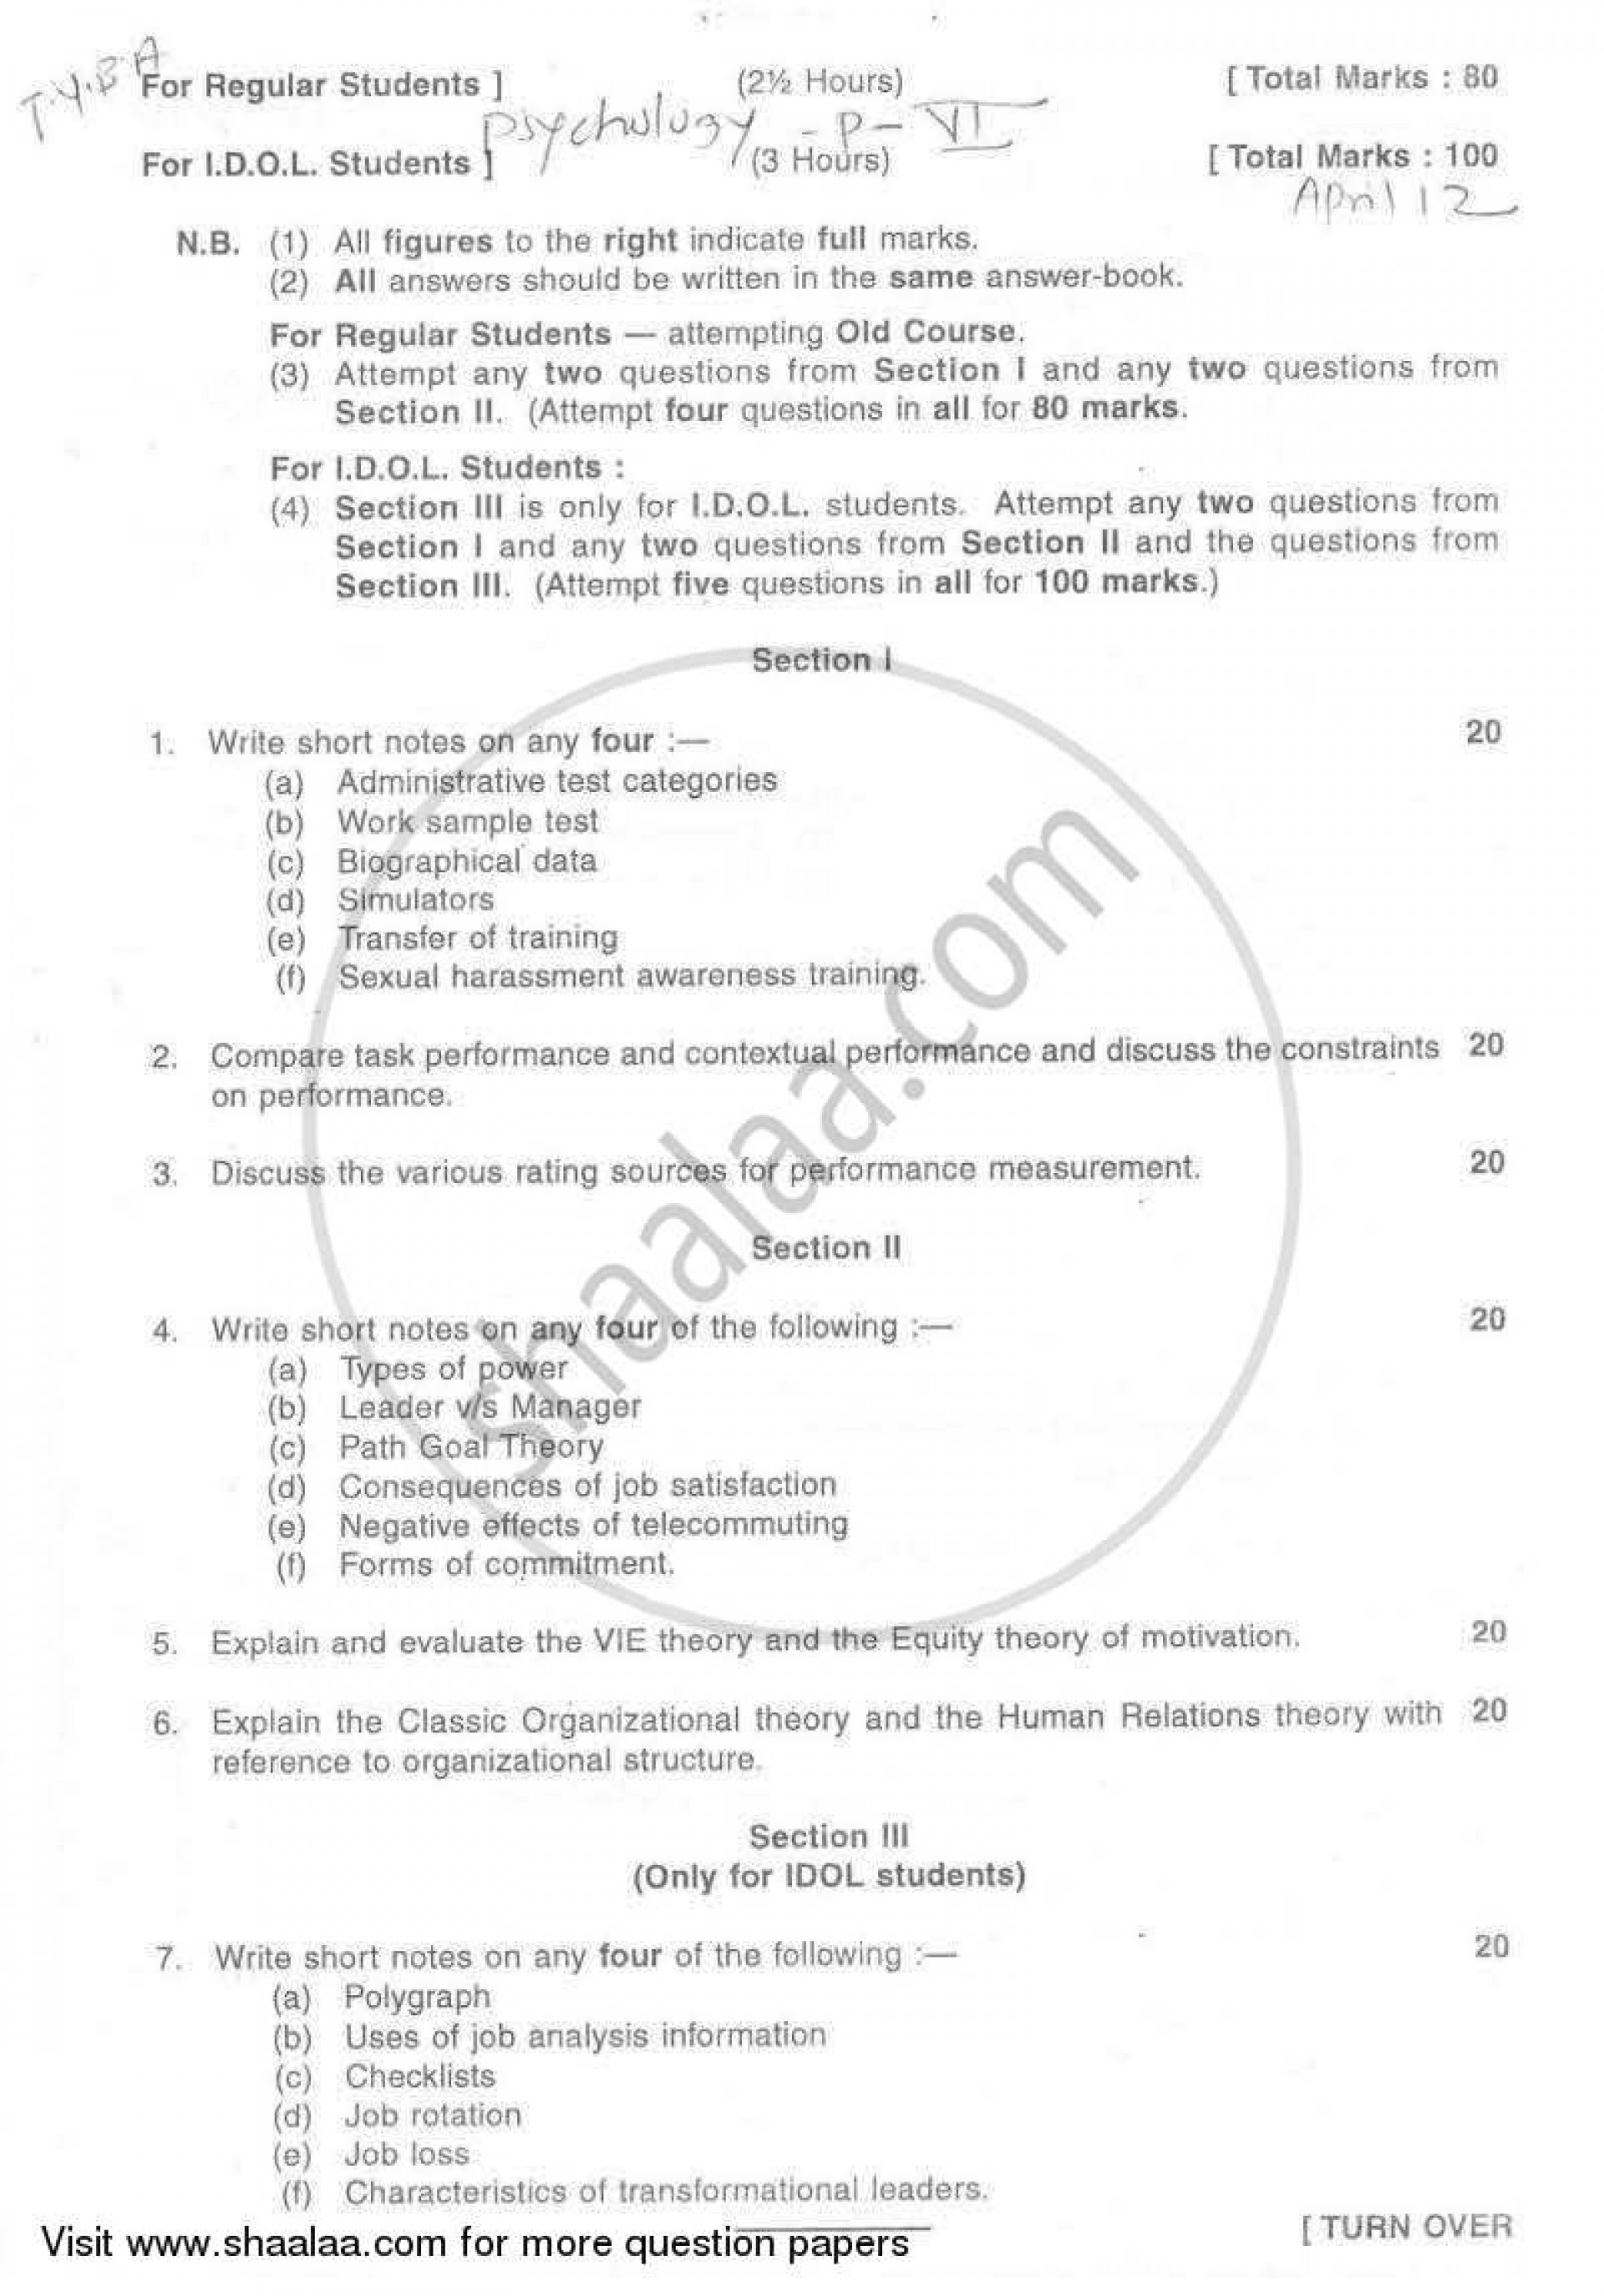 017 Psychologyearch Paper On Dreams University Of Mumbai Bachelor Industrial Organizational T Y Yearly Pattern Semester Tyba 2011 29a03925dfc524f2aa4cb10e4d3da996a Singular Psychology Research Topics Questions News Articles 1920